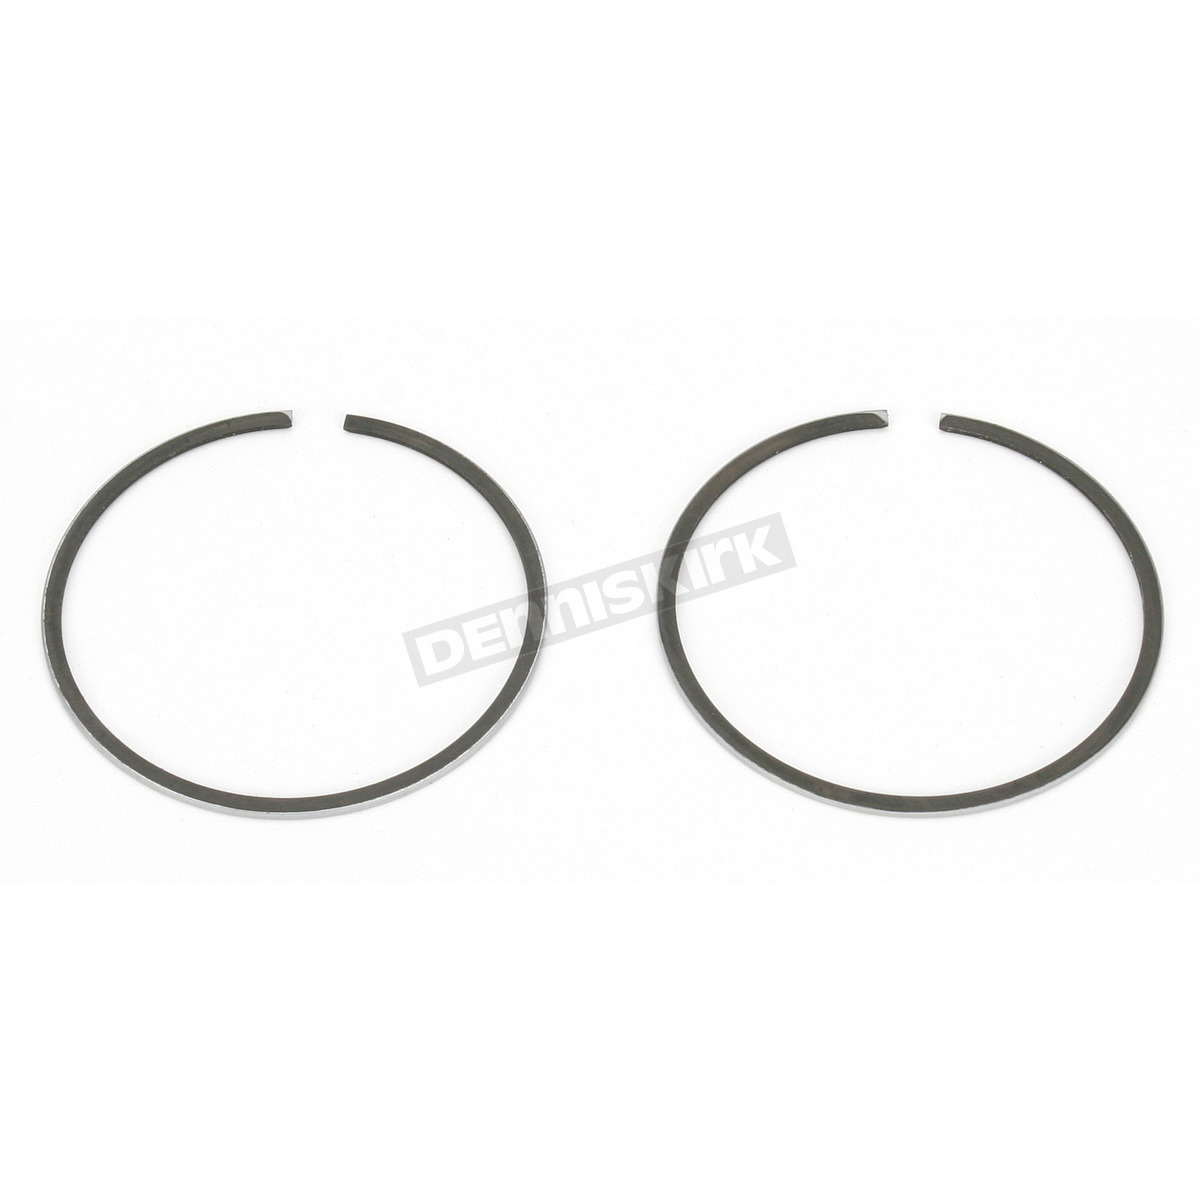 Parts Unlimited Piston Rings